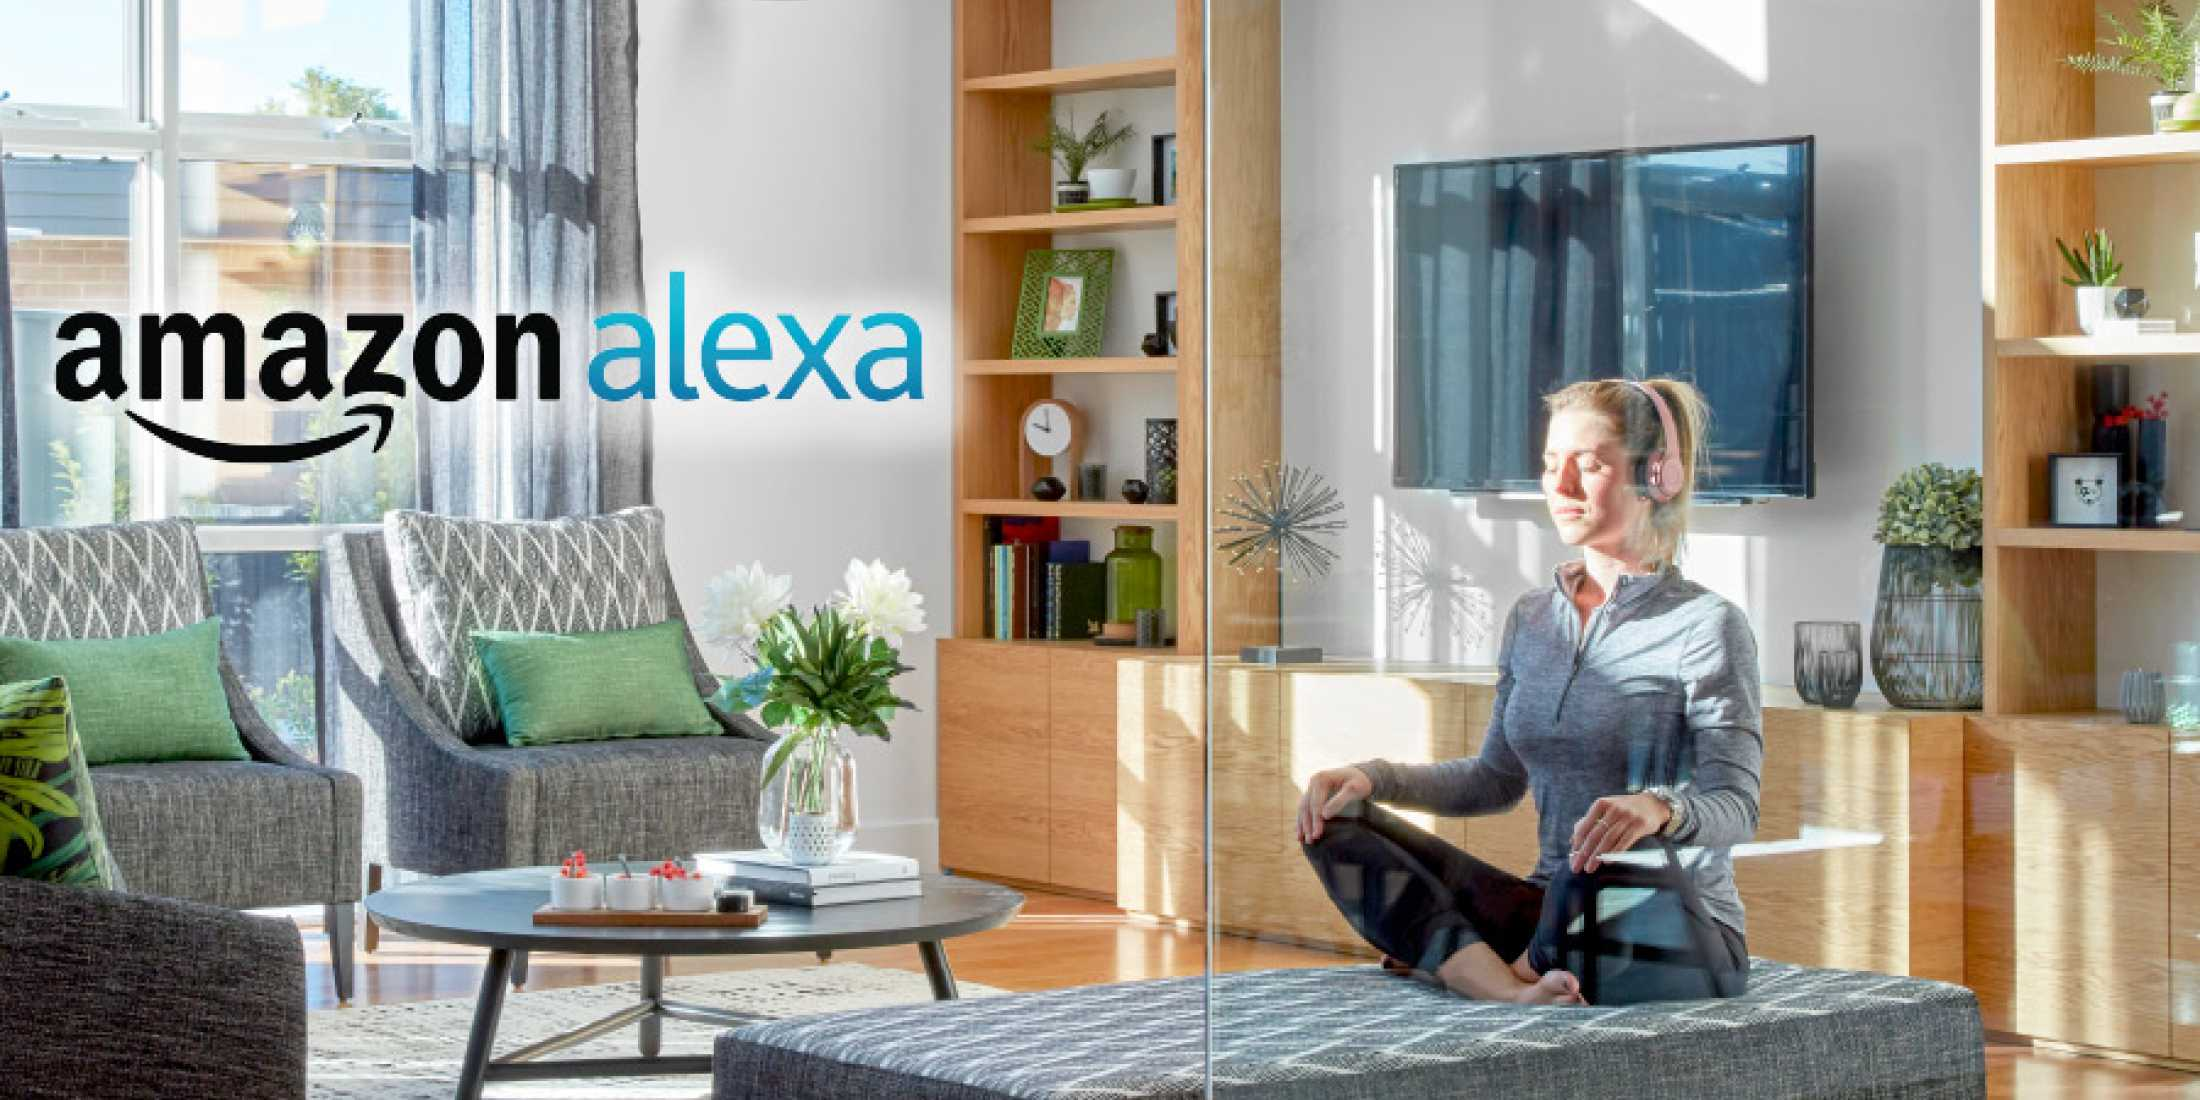 Smart homes with amazon's alexa available with new Comdain home builds